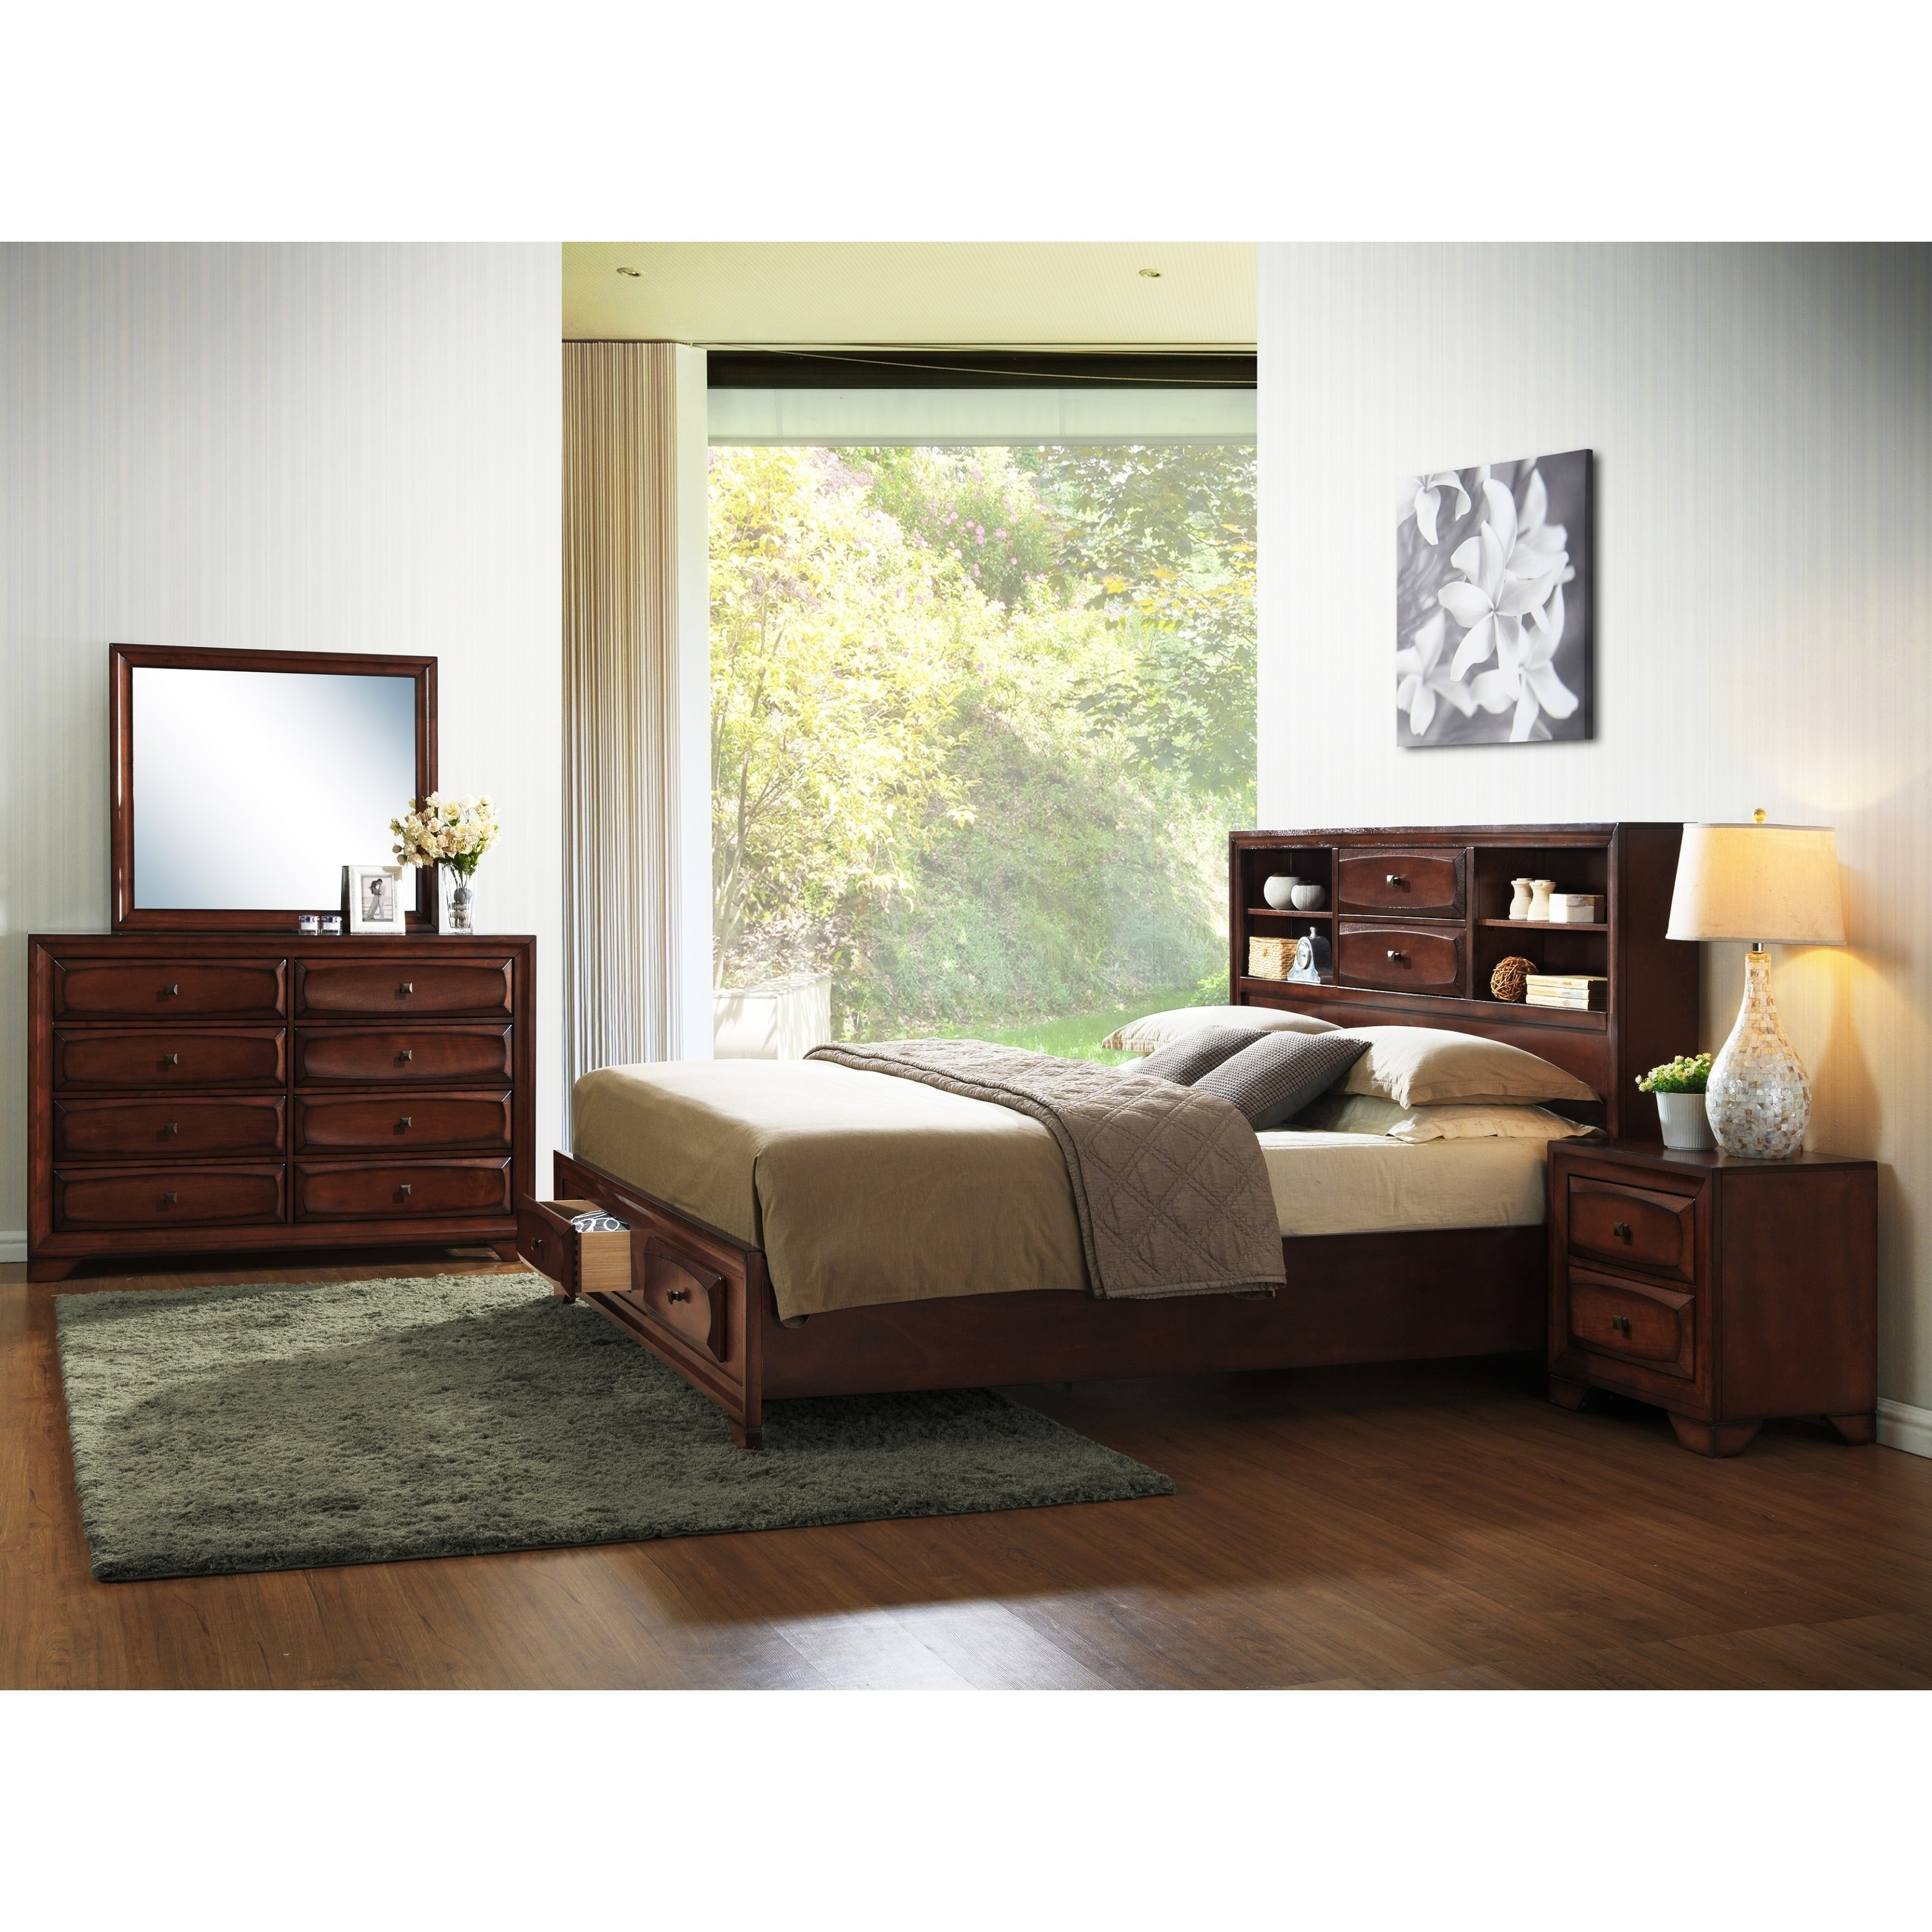 Asger Antique Oak Wood King Size Storage Bedroom Set Auctions Buy And Sell Findtarget Auctions